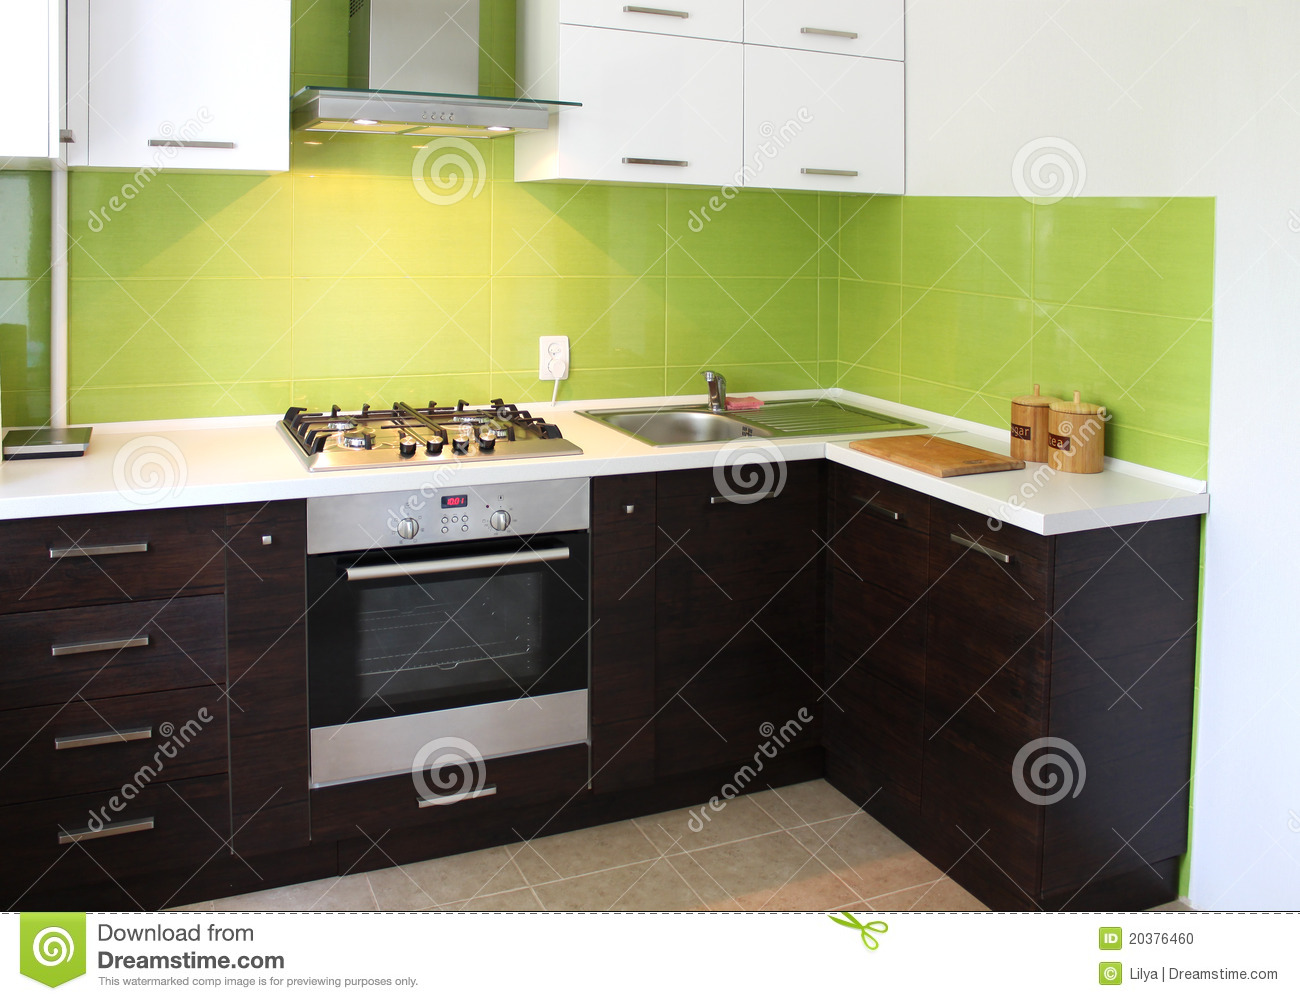 Domestic Kitchen design stock photo. Image of simplicity - 20376460